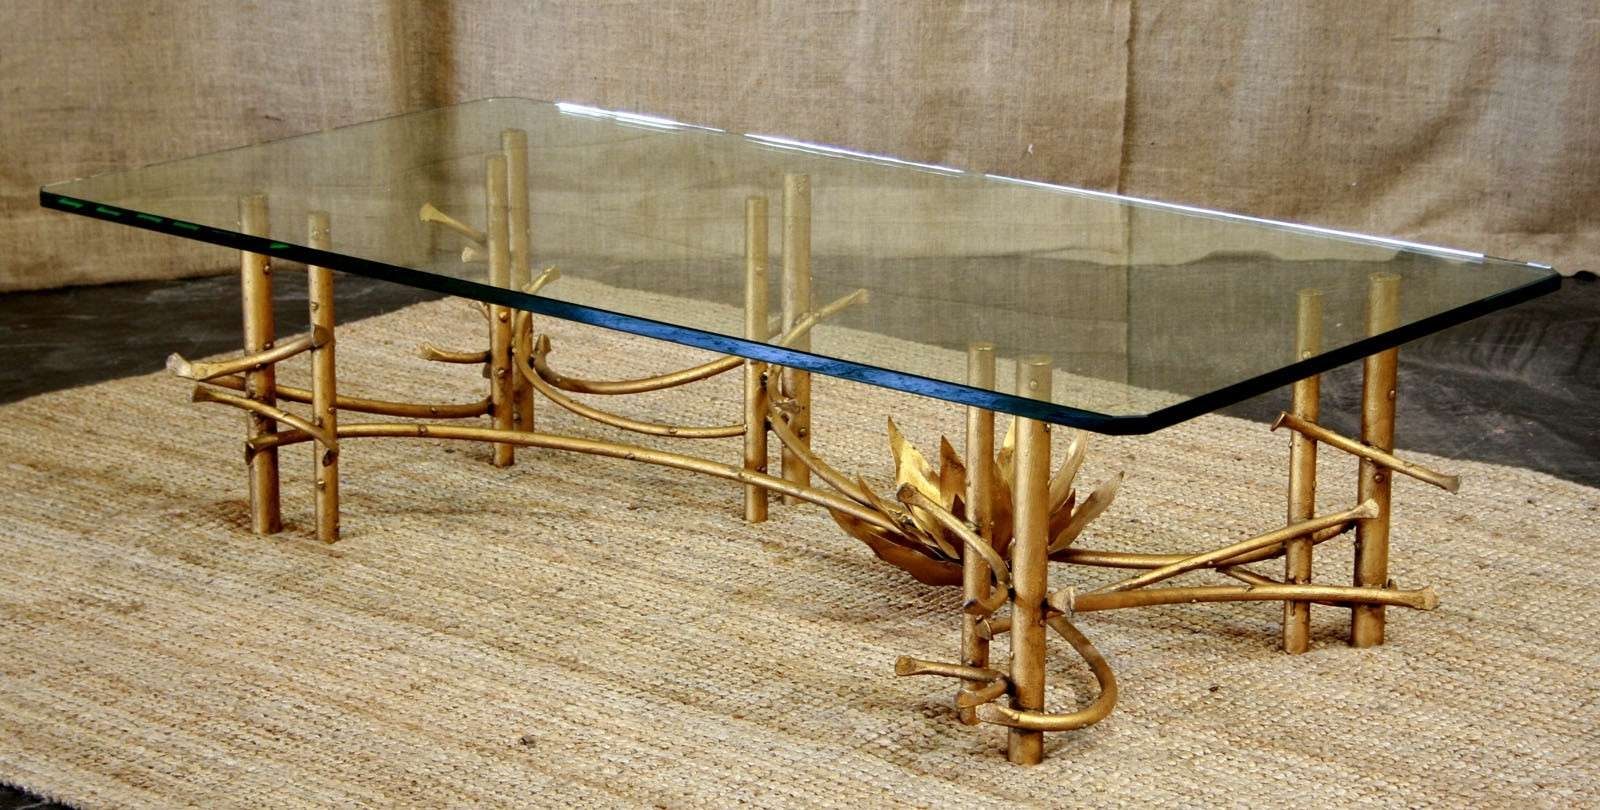 Gold Bamboo Glass Coffee Table Inspirational Excellent Bamboo Intended For Most Up To Date Gold Bamboo Coffee Tables (View 11 of 20)